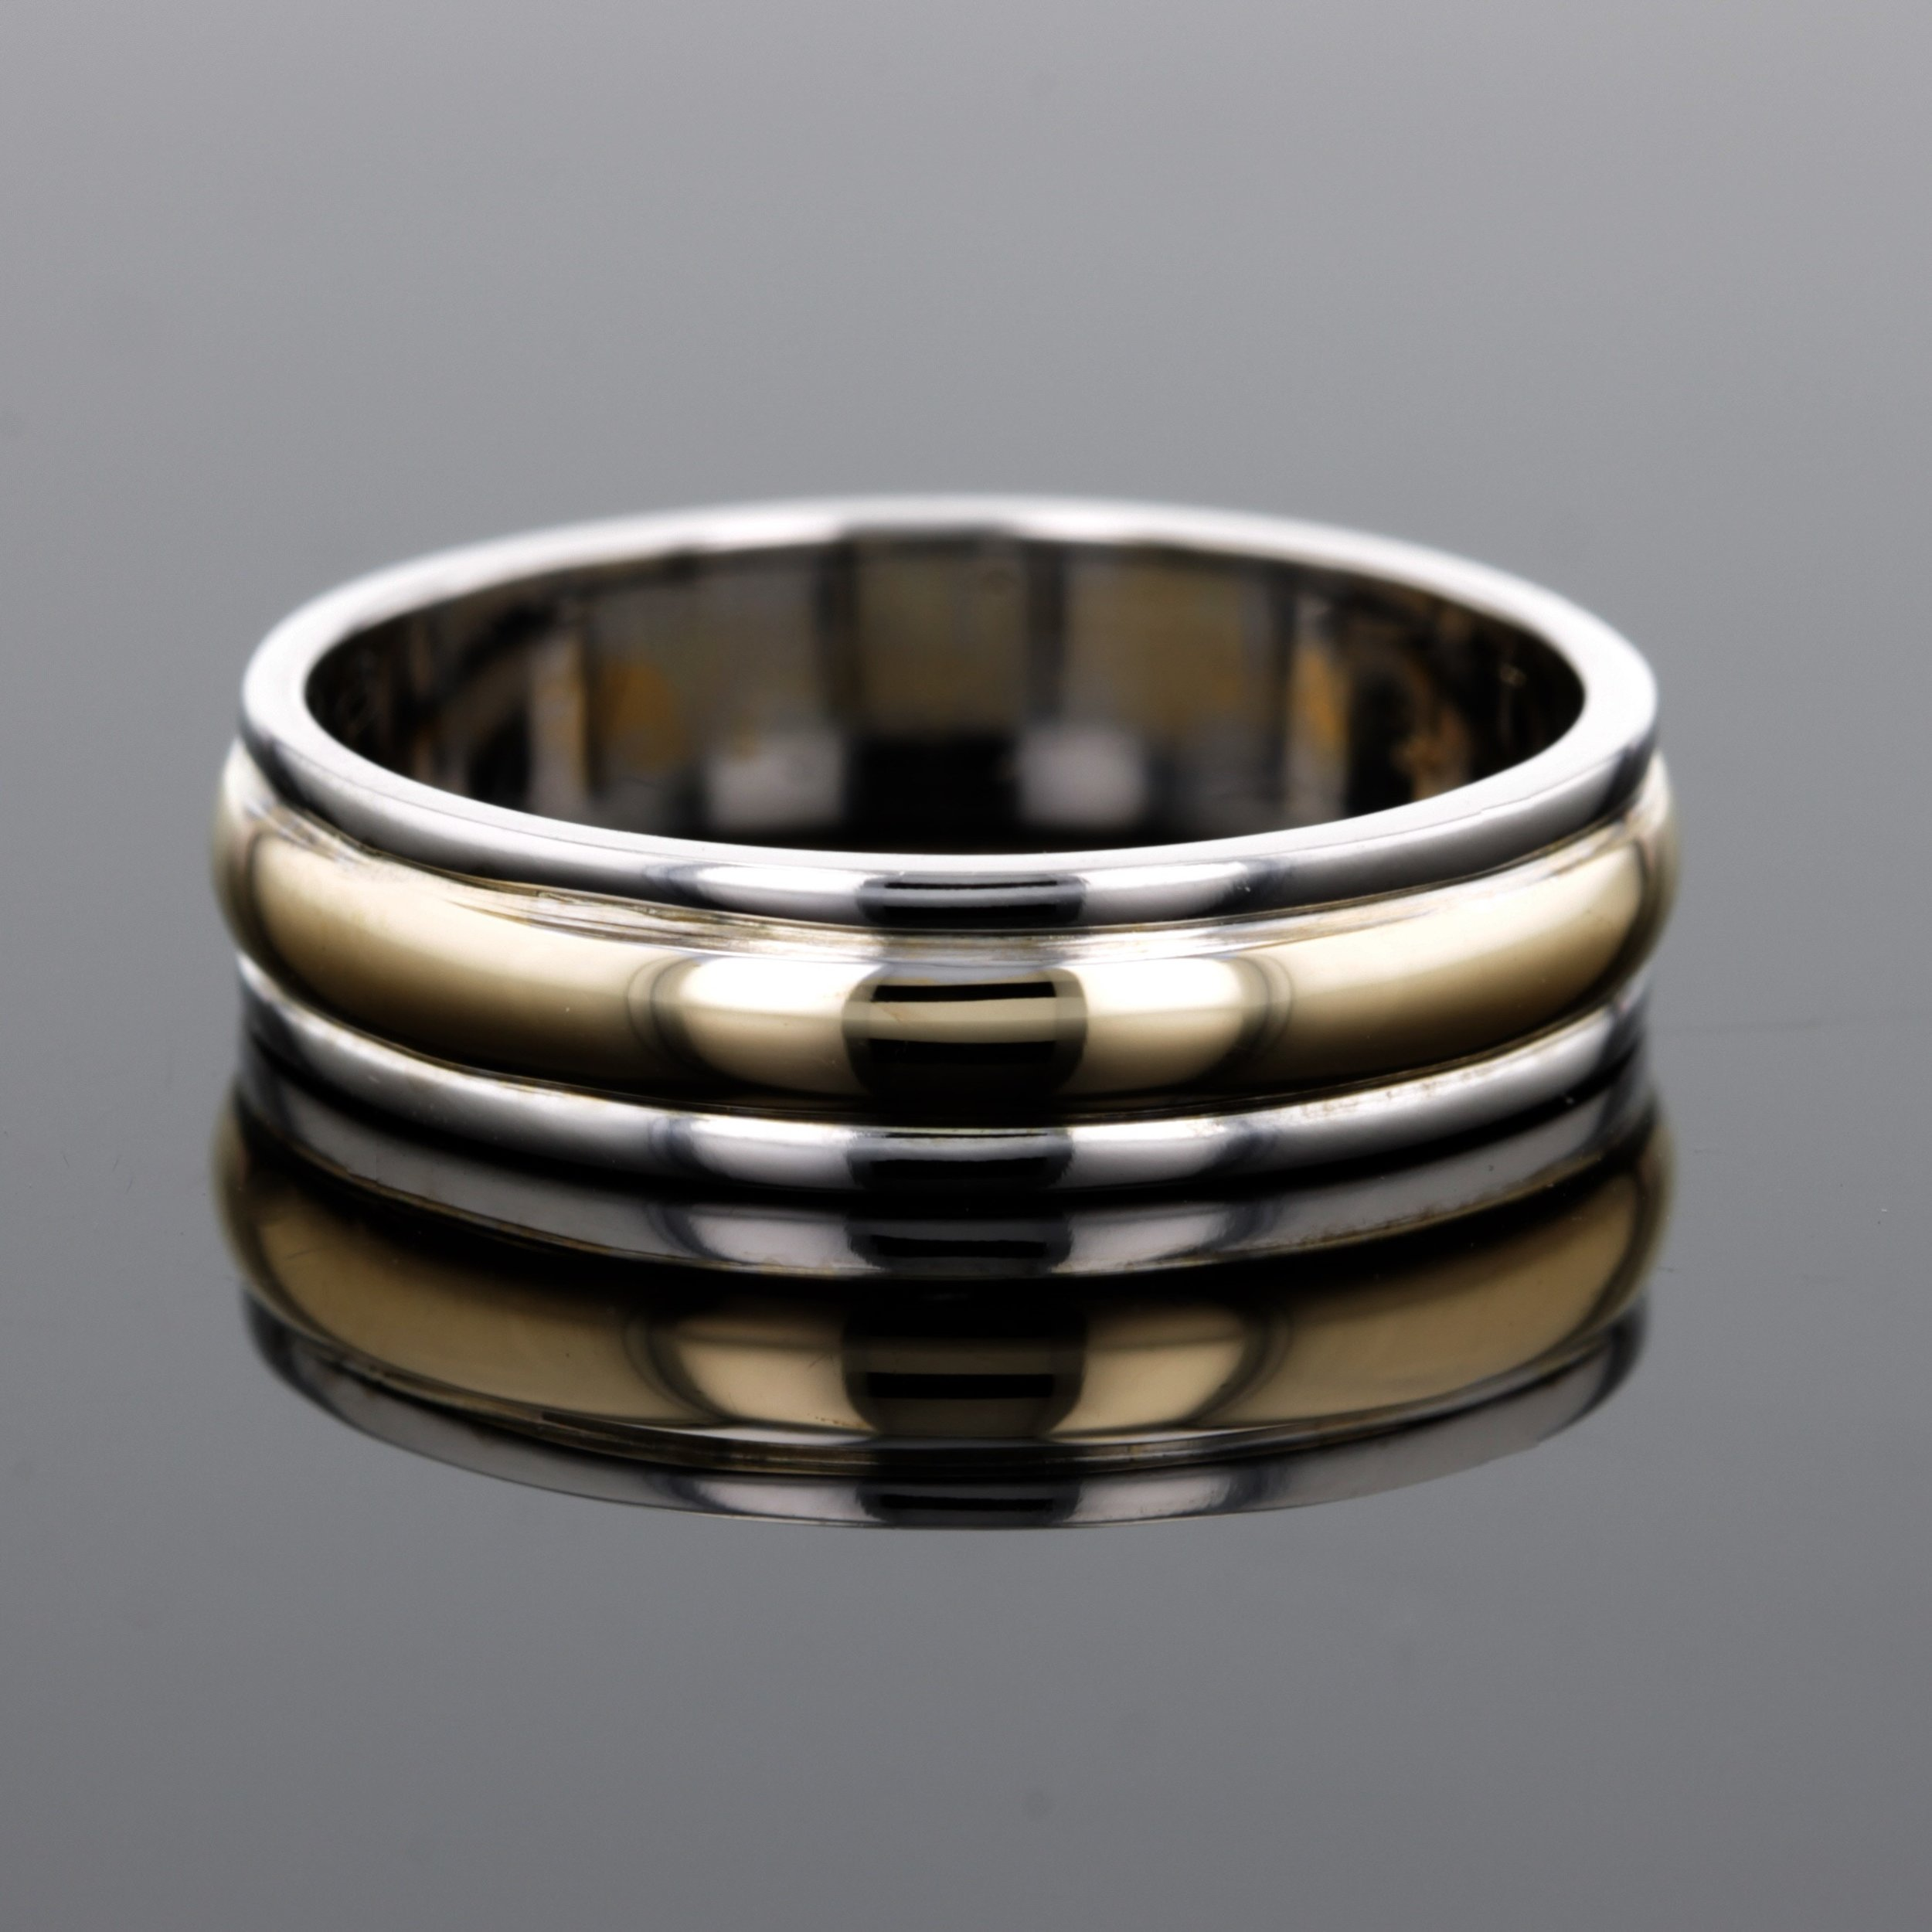 custom-two-tone-mans-wedding-band-yellow-gold-platinum.jpg